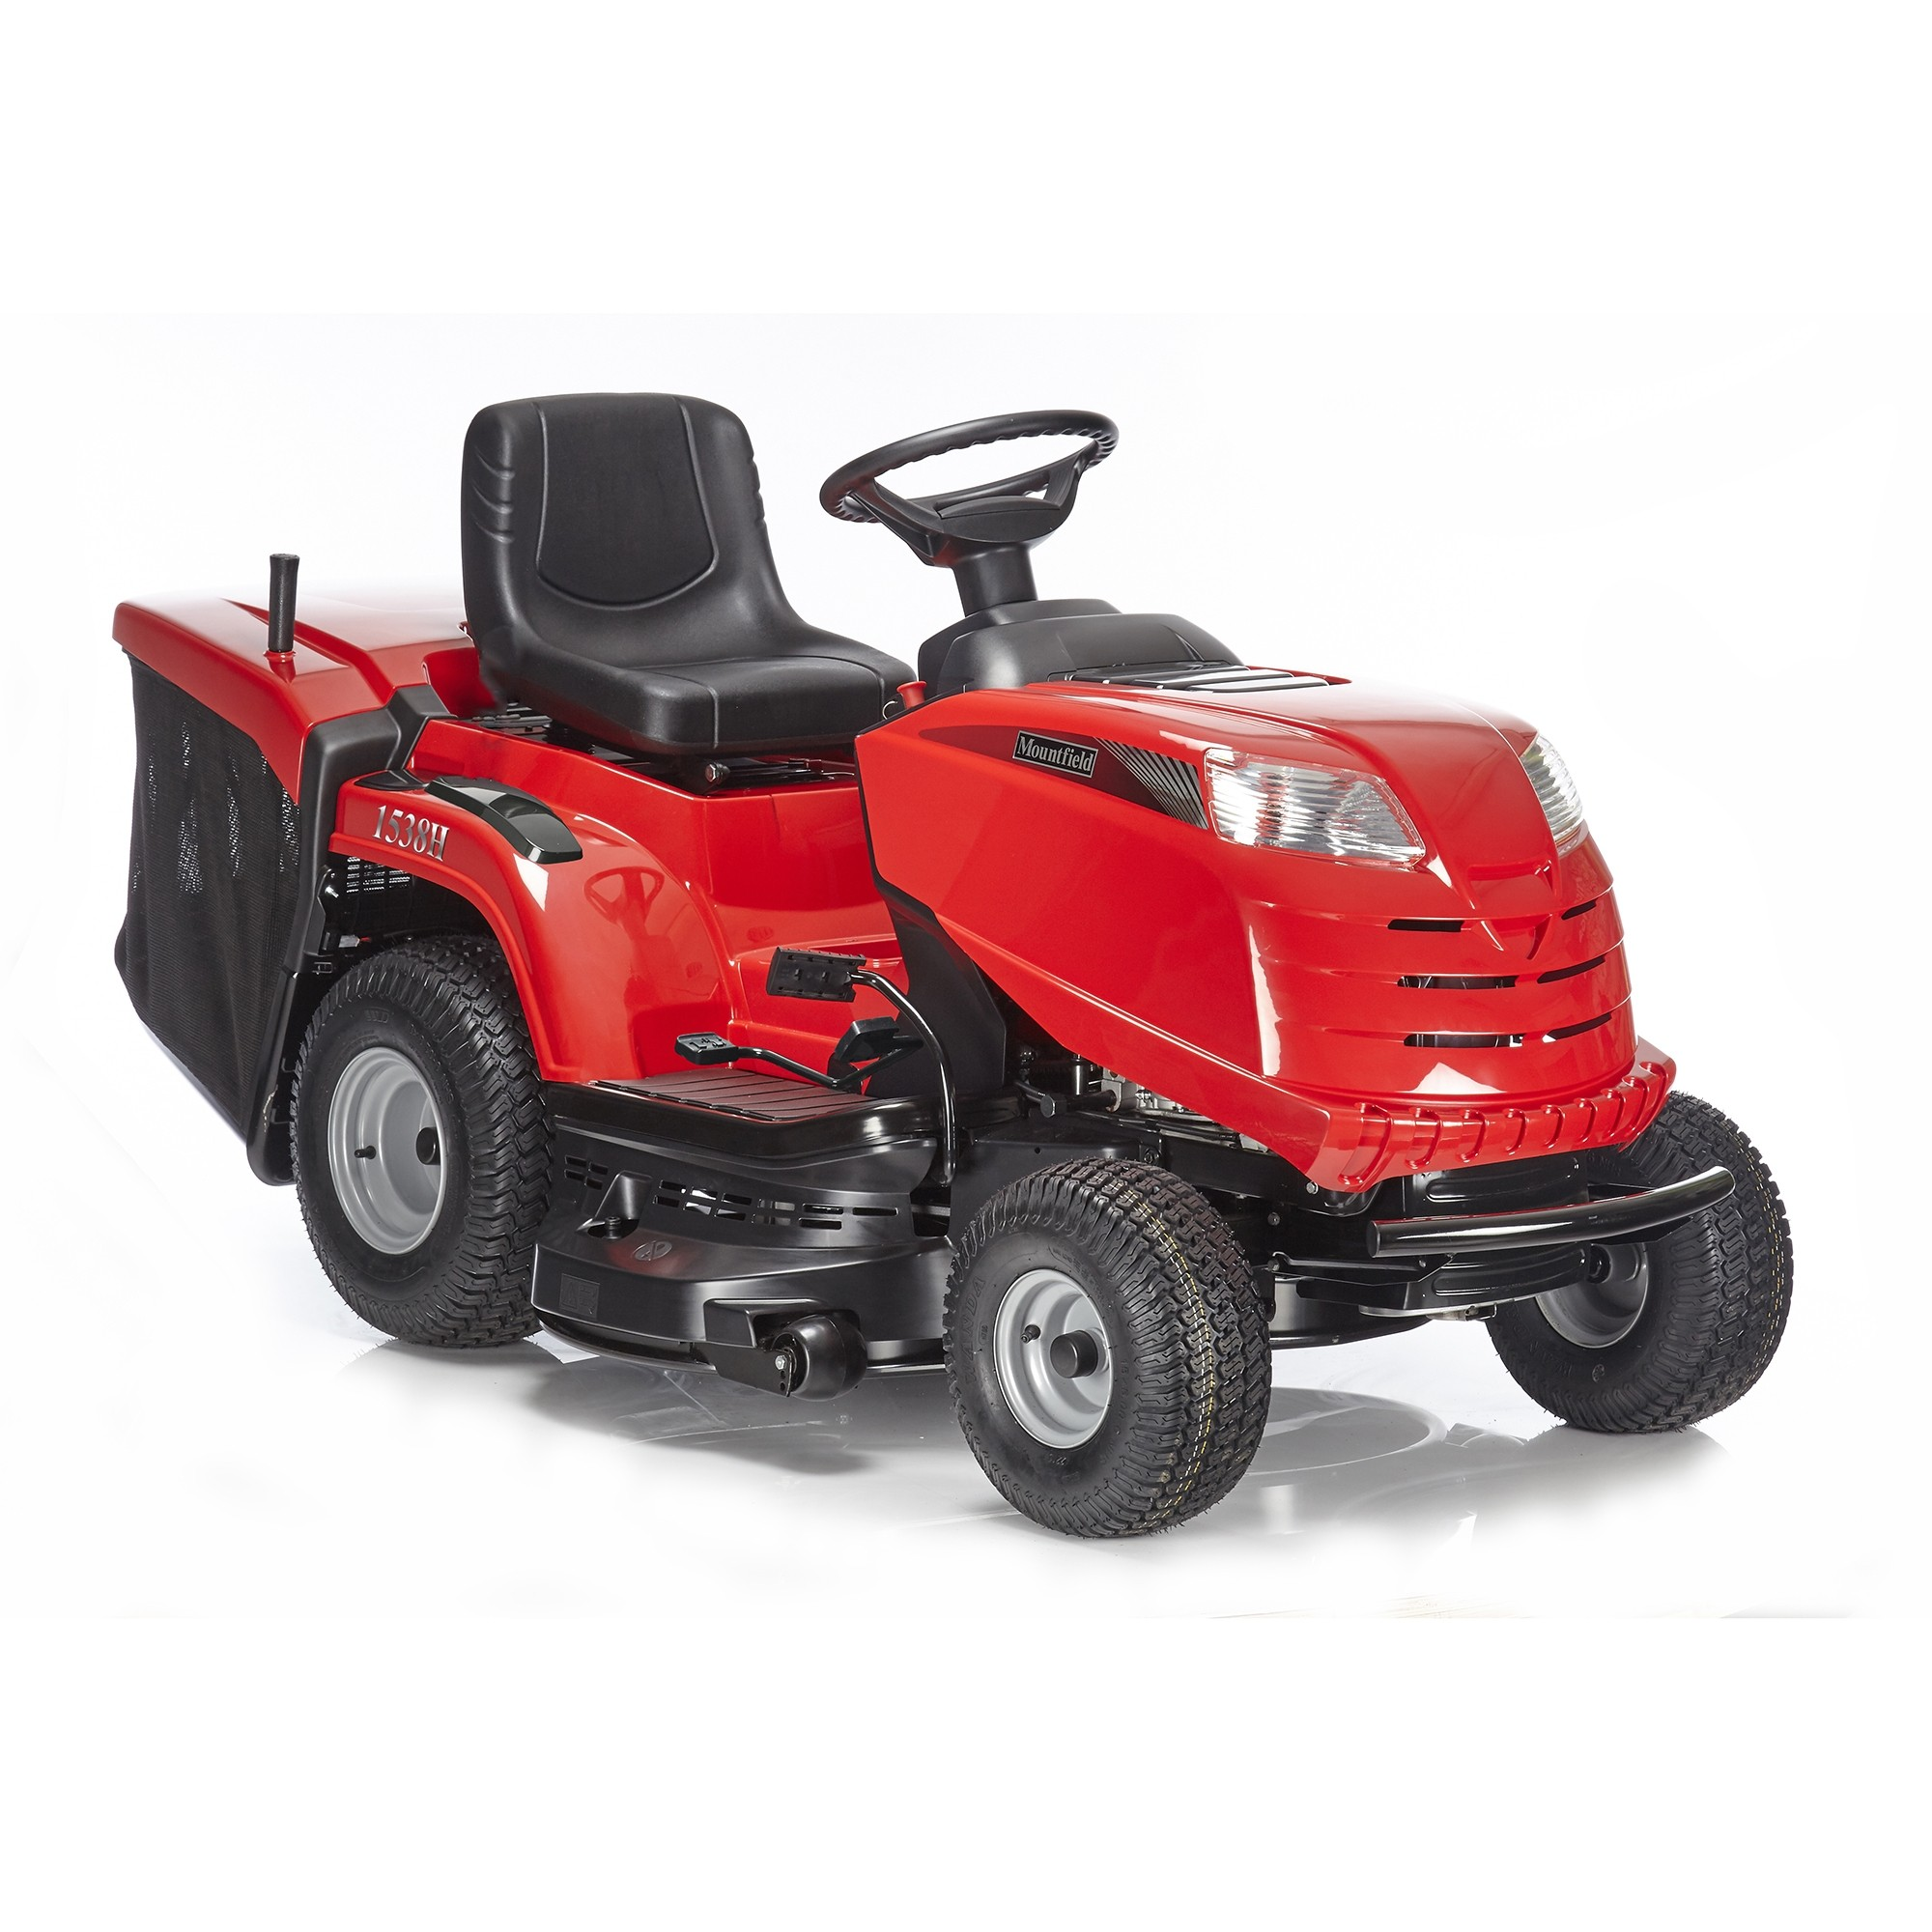 1538h lawn tractor